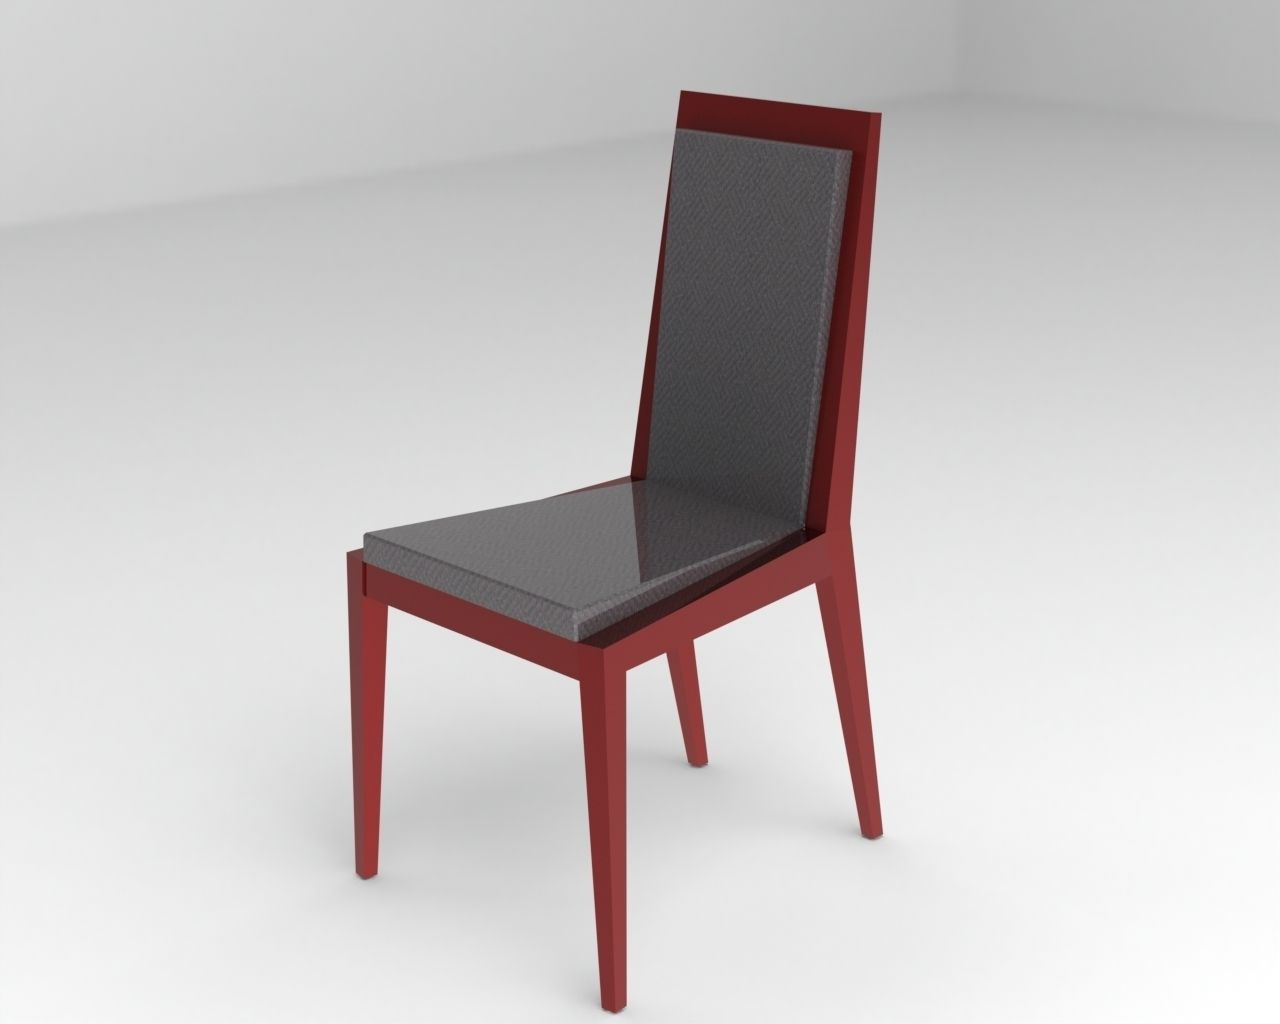 Elegant chair free 3d model ige igs iges for New model chair design